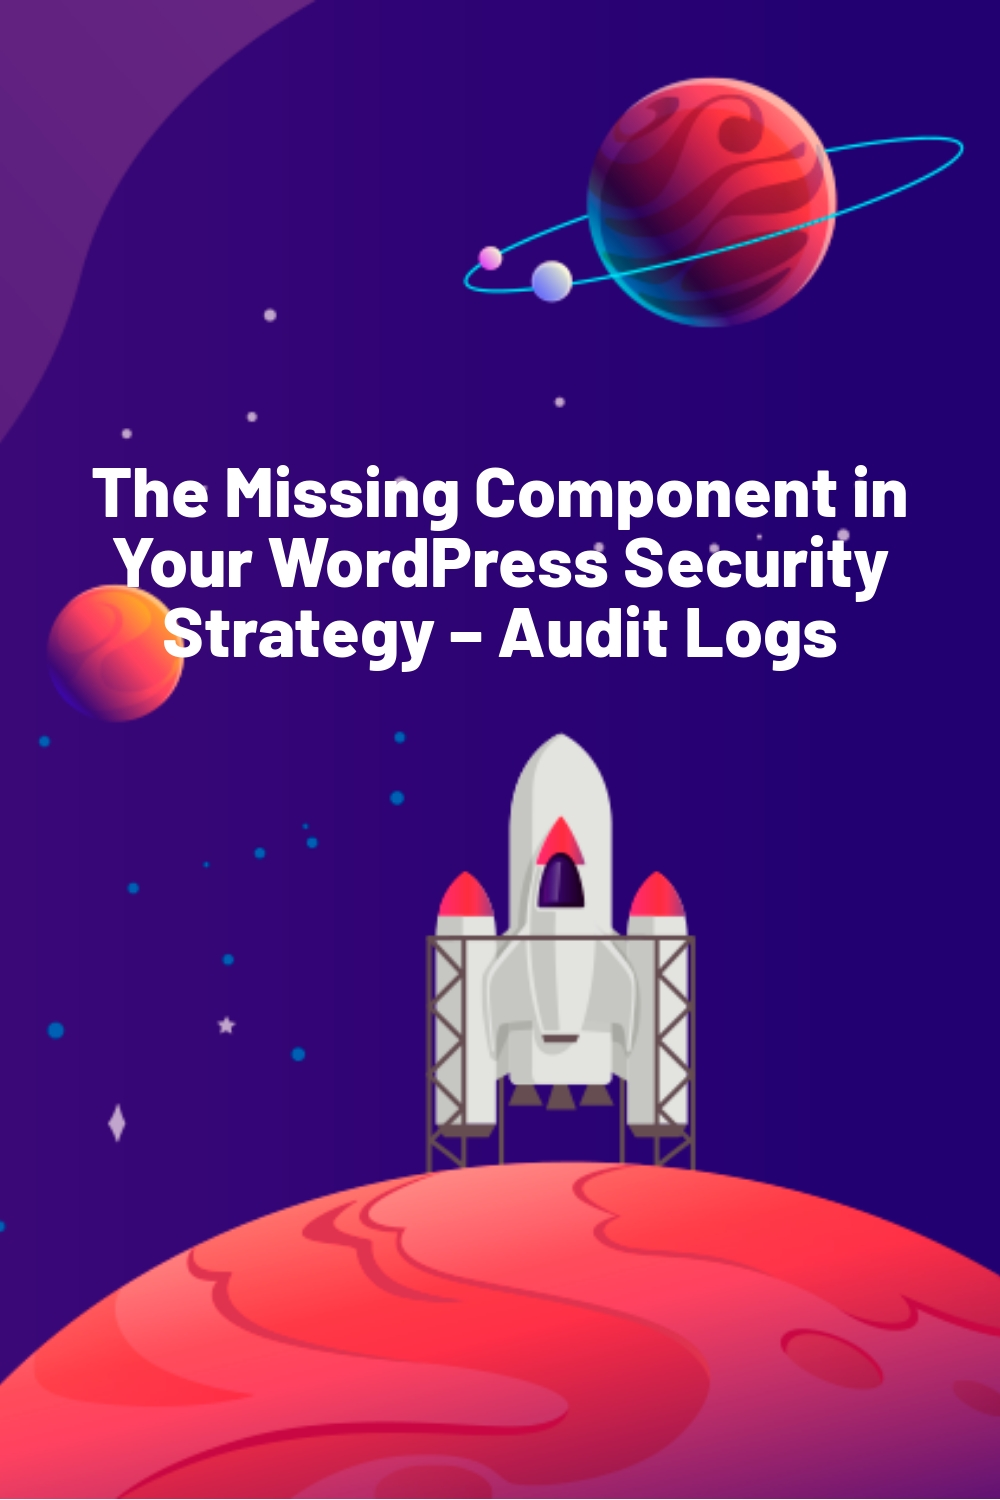 The Missing Component in Your WordPress Security Strategy – Audit Logs